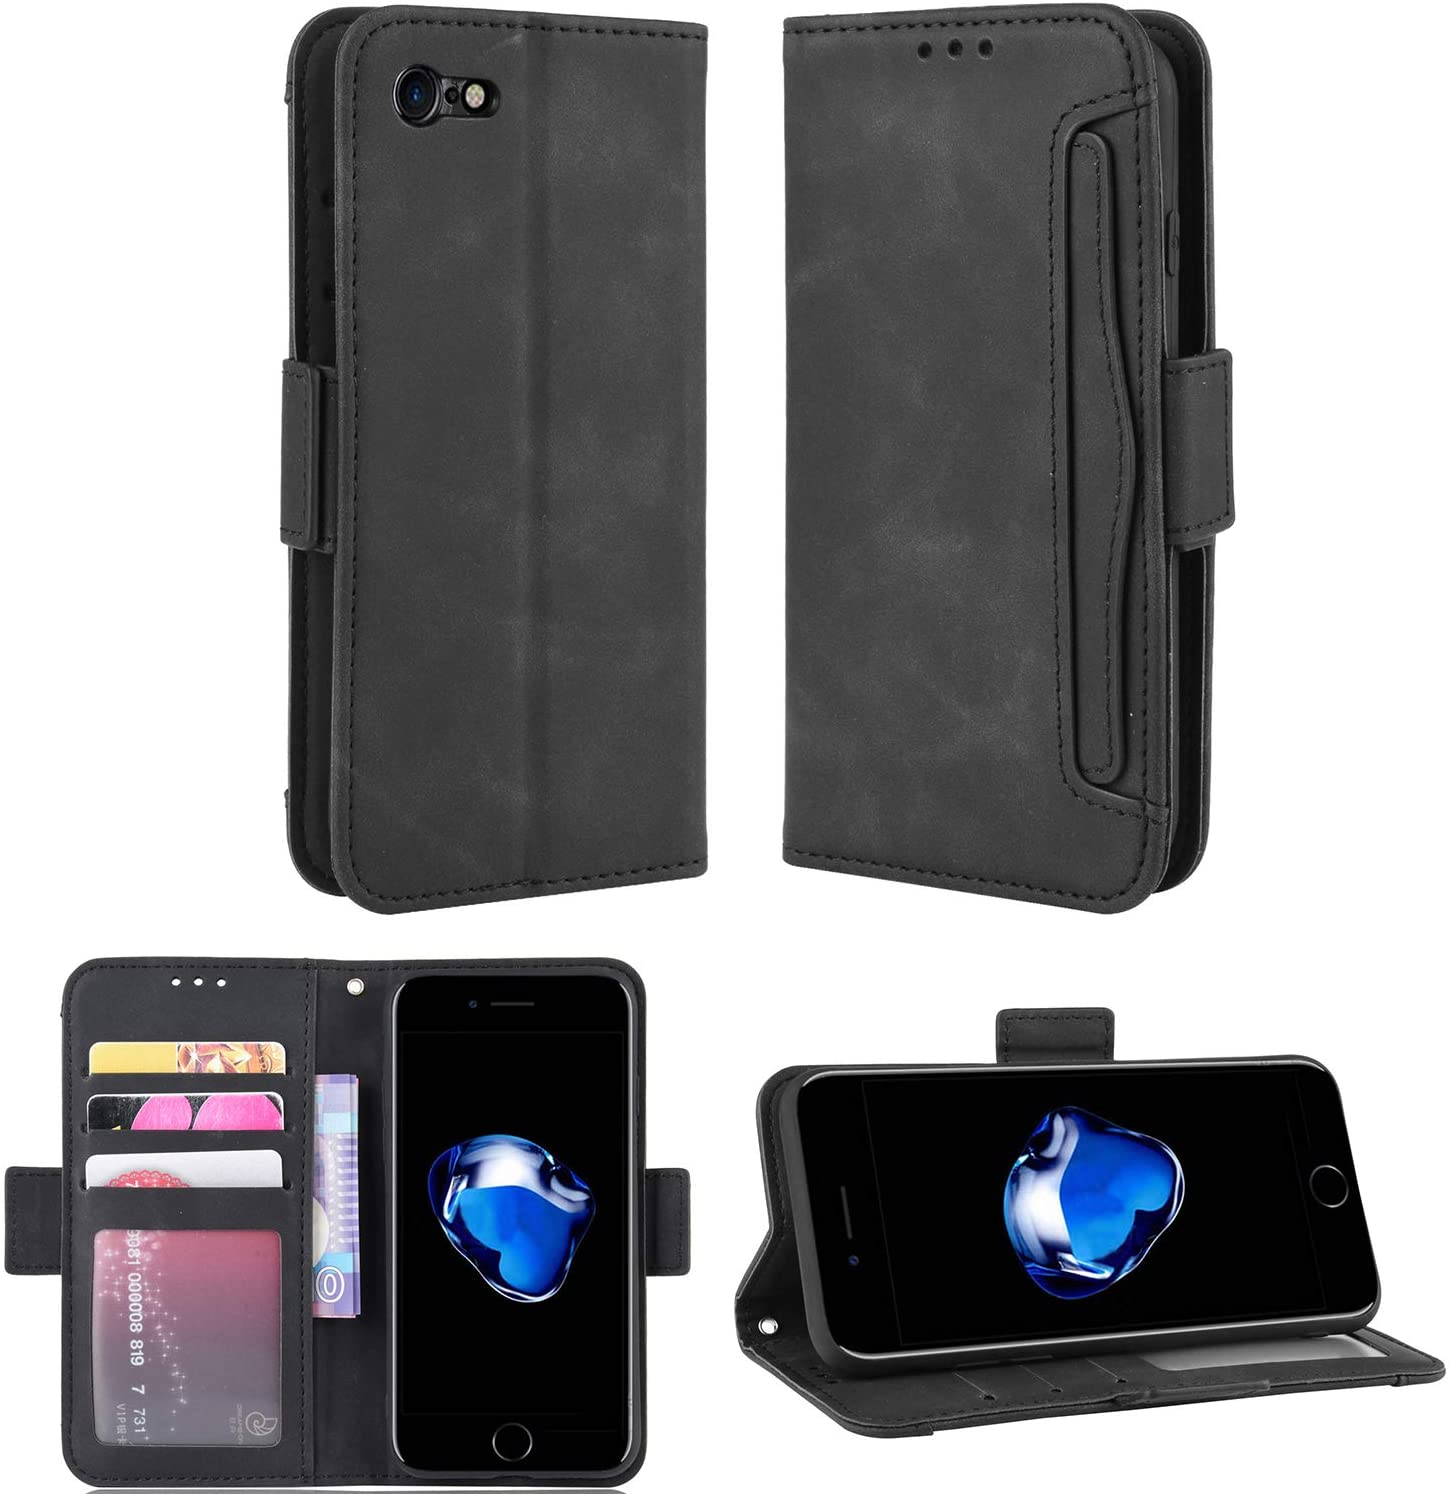 FengXinZi Compatible with iPhone SE 2020/7/8 Wallet Case with Card Holder, Credit Card Slots Anti-Scratch Shockproof Protective,Premium PU Leather Kickstand Girls SE2020 iphone7cases iphone7 Black